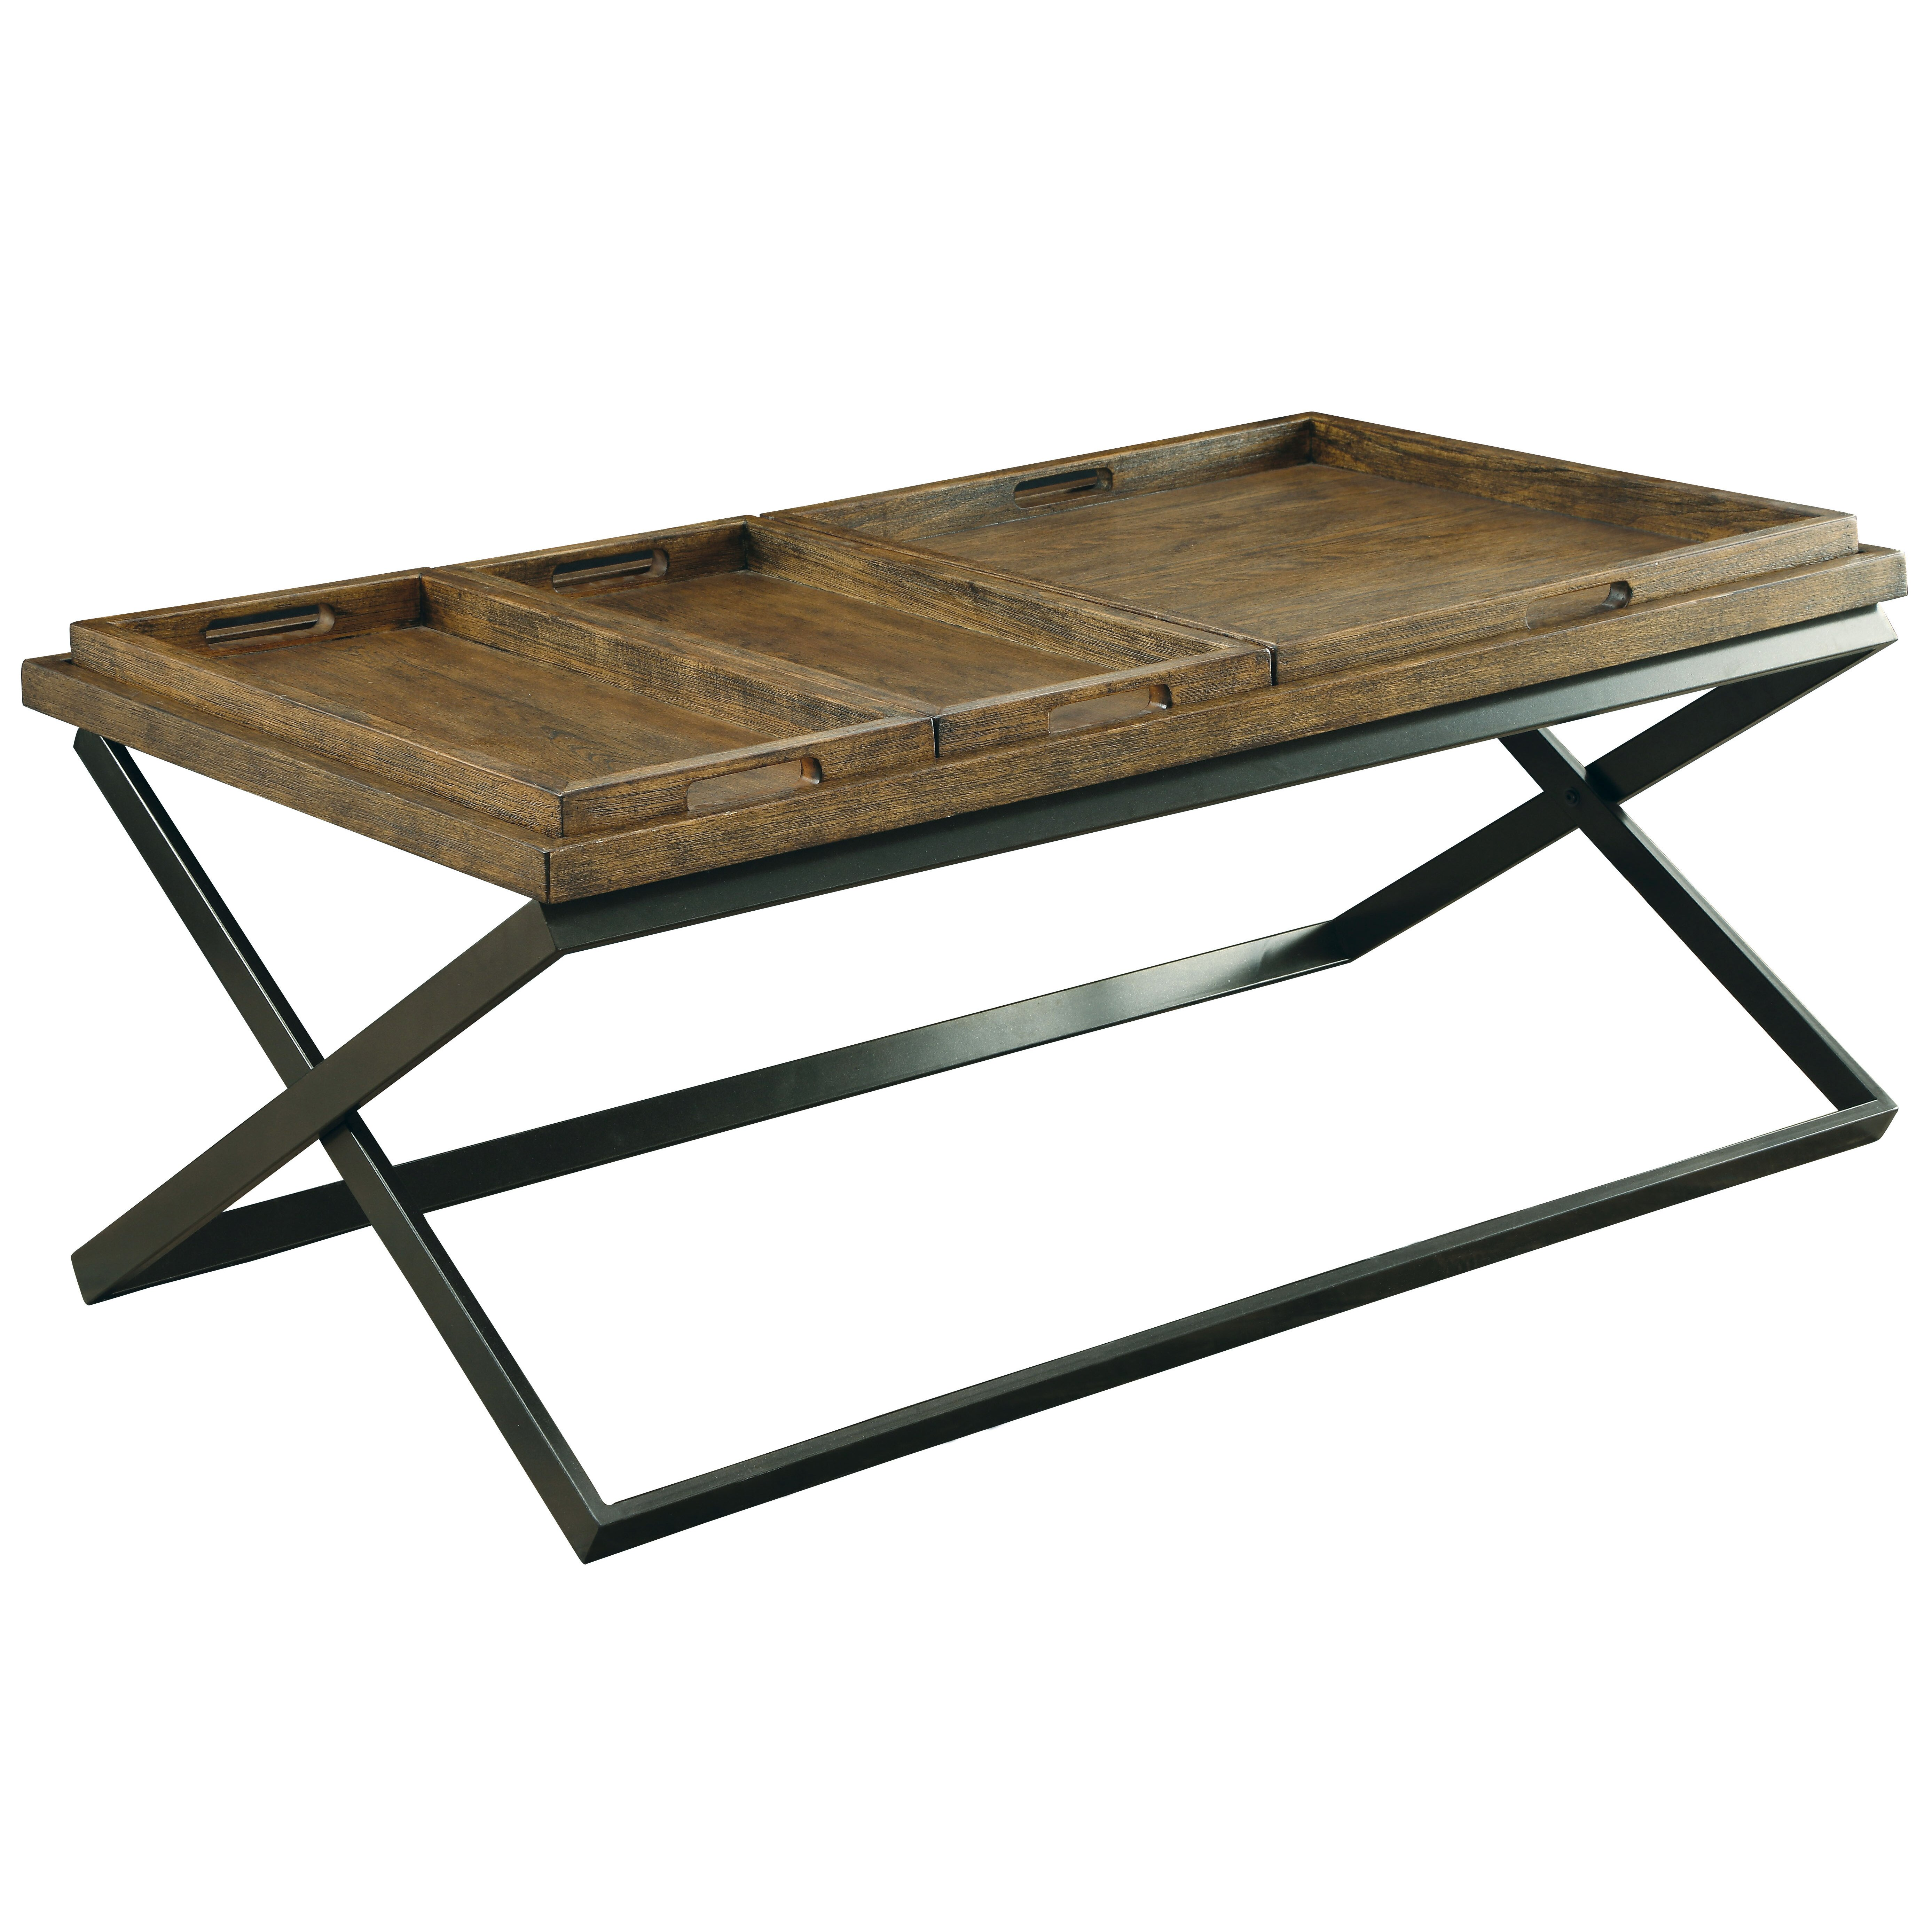 Coffee Table With Tray Top: EnitialLab Chet Coffee Table With Tray Top